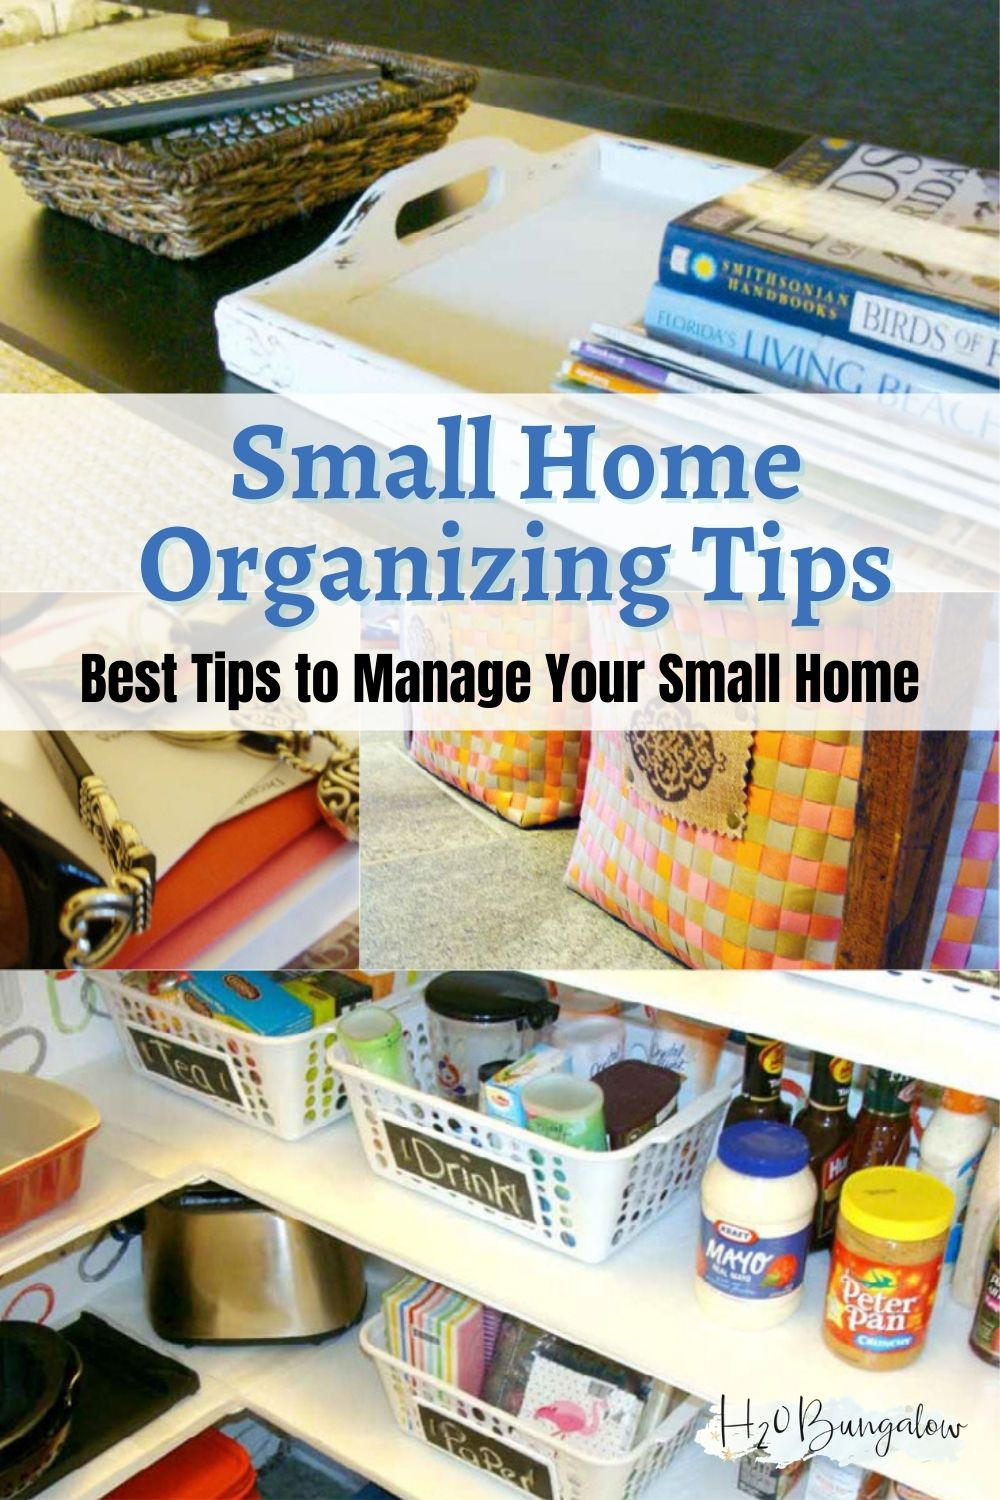 image collage with text Small Home Organizing Tips, Best Tips to Manage Your Small Home